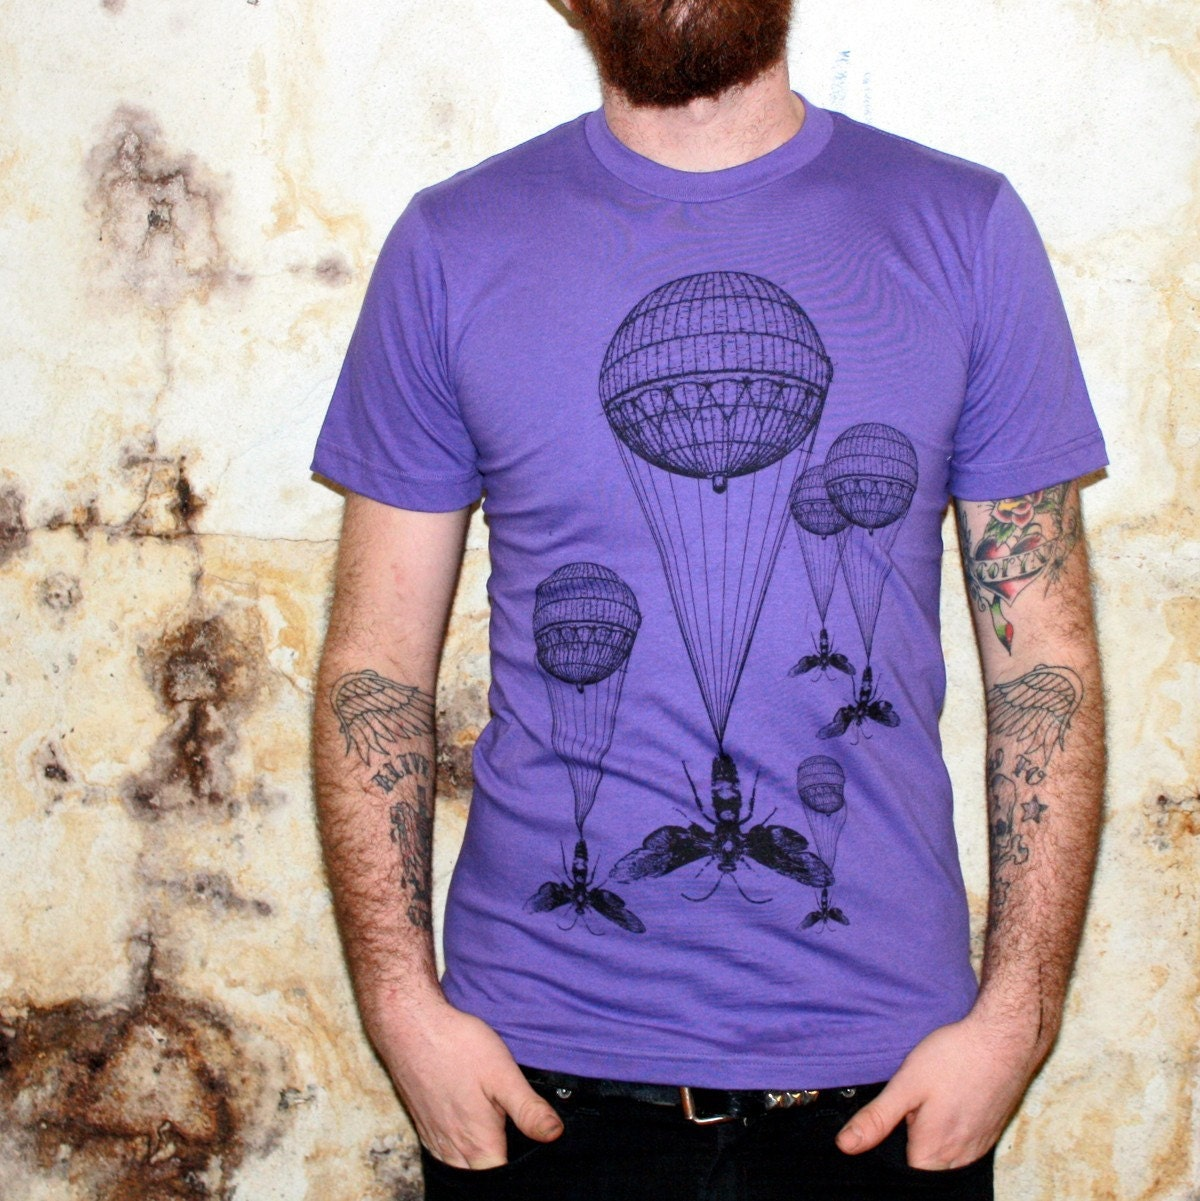 Steampunk TShirt - Hot Air Balloon Wasp Illustrated Design - American Apparel Purple Shirt - Free Shipping - Available in XS, S, M, L, XL and XXL